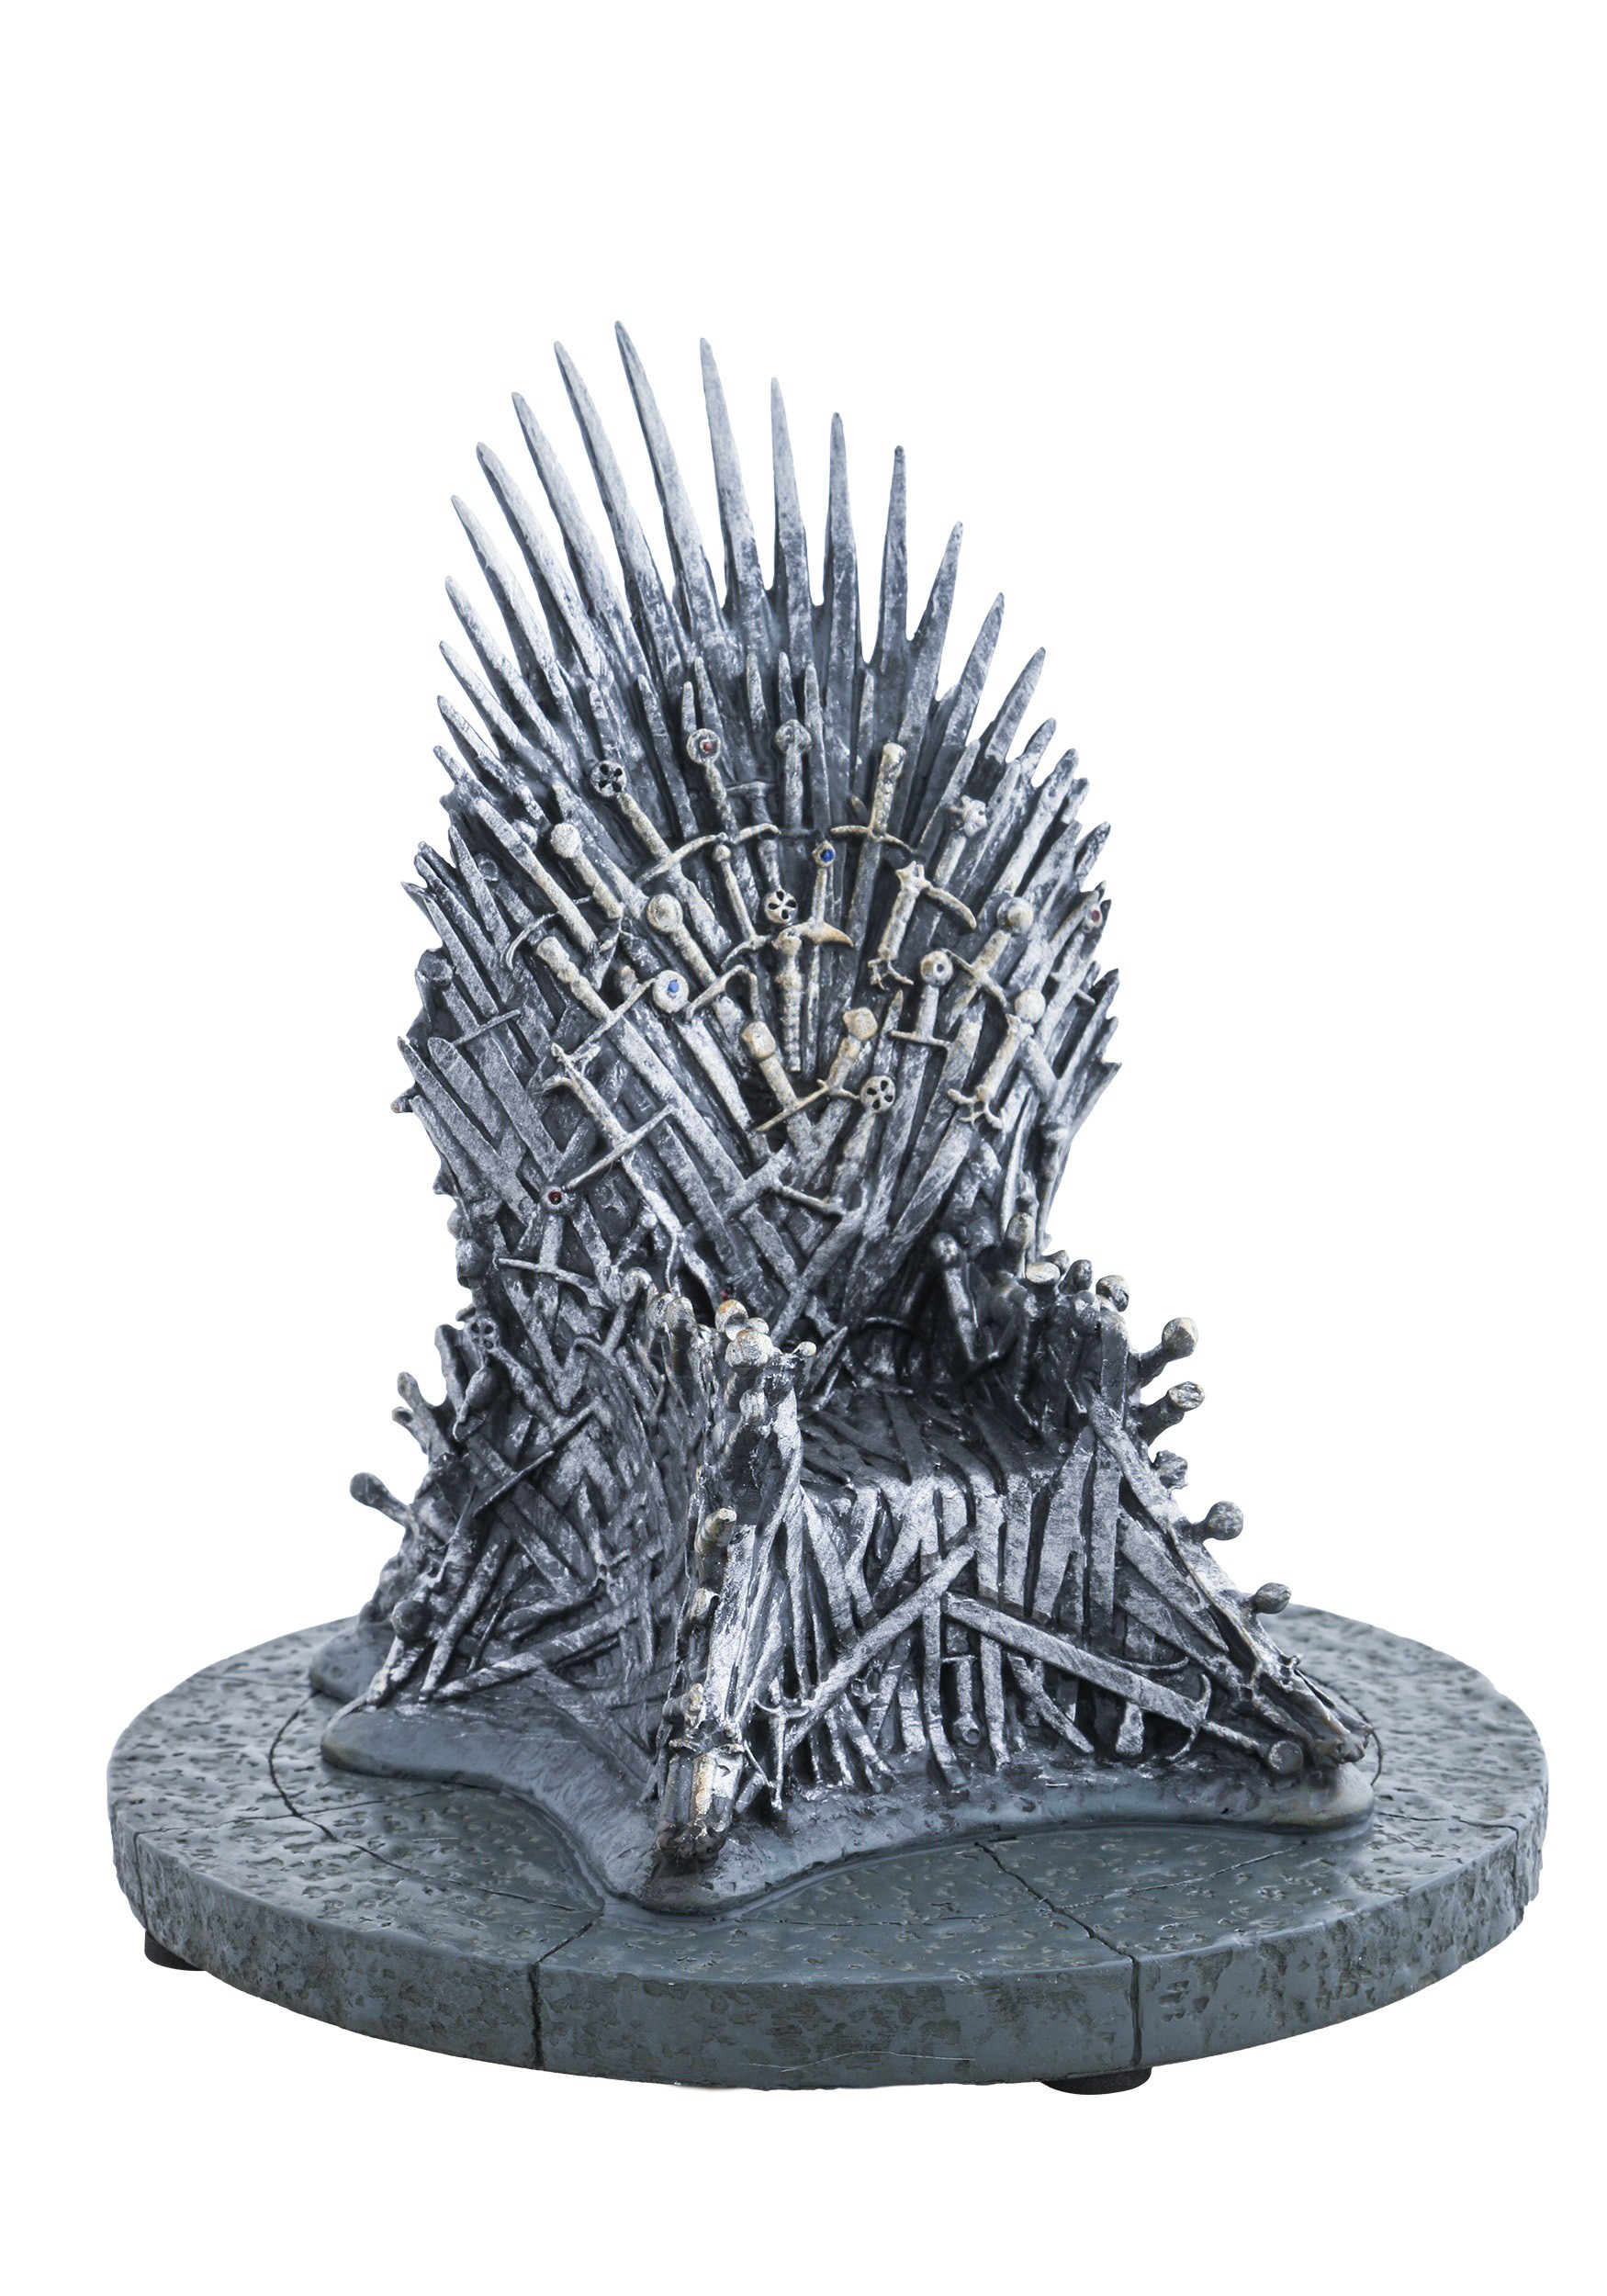 7 Quot Iron Throne Replica